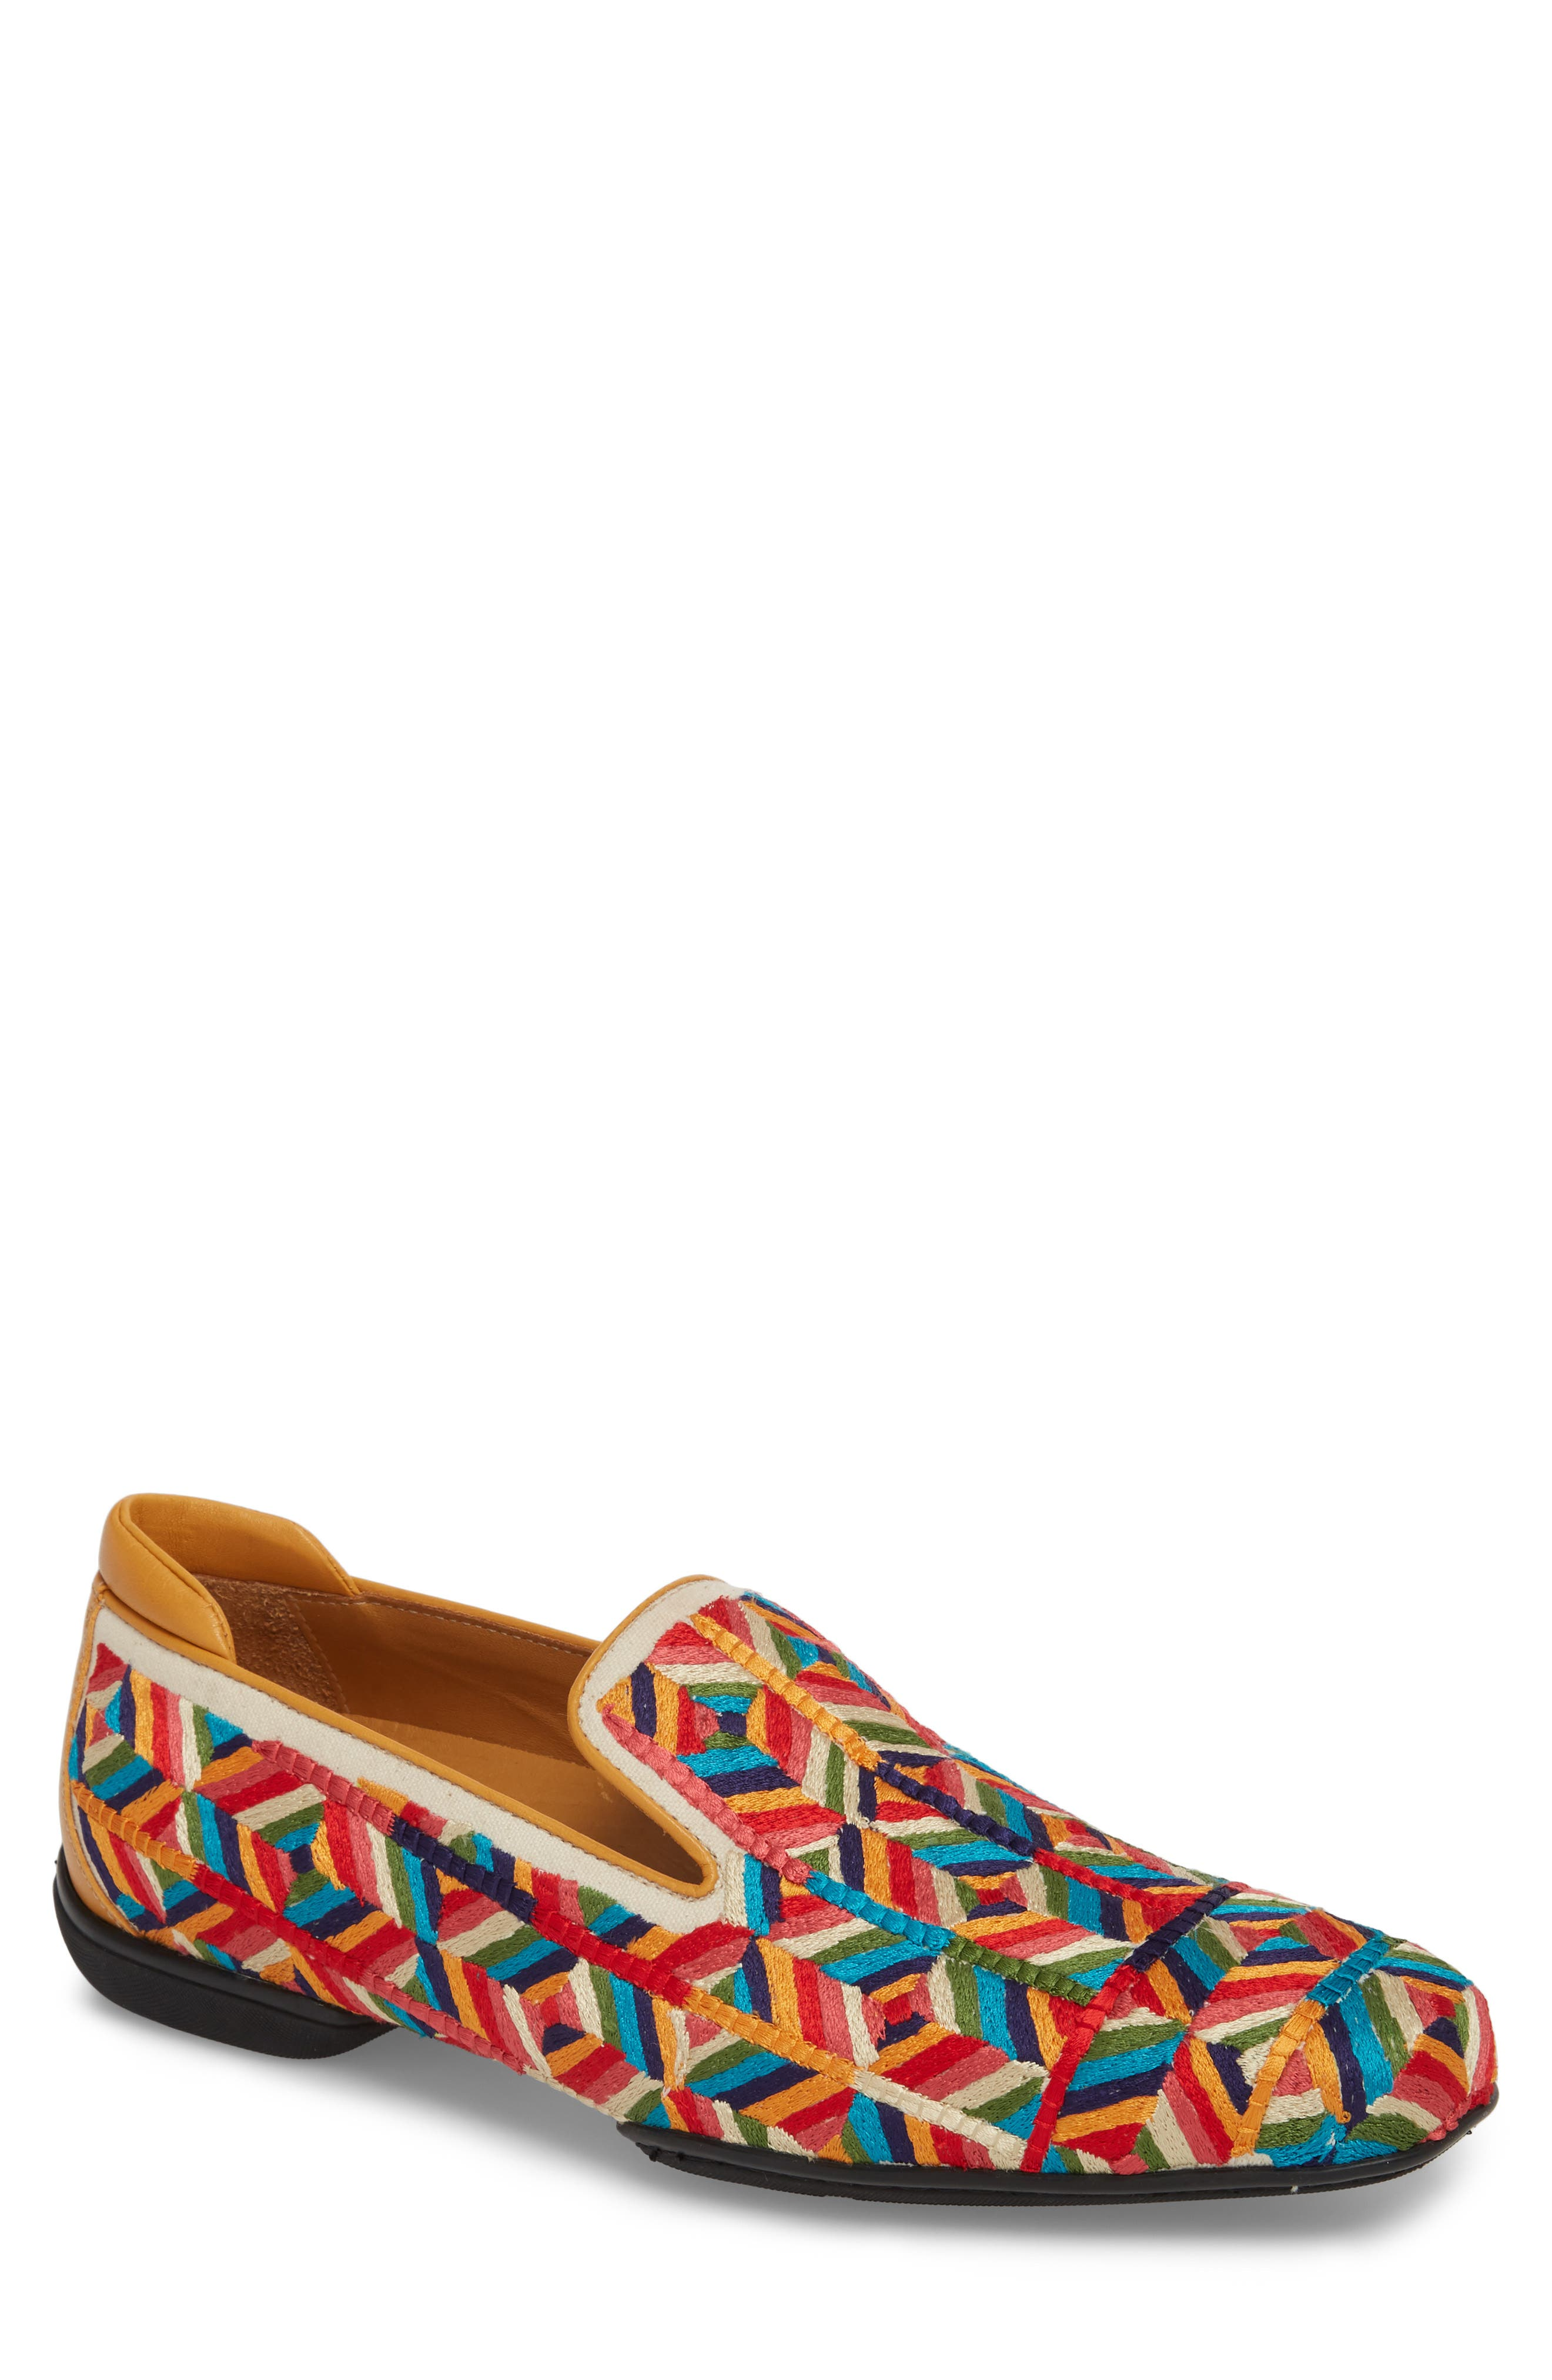 Verge Venetian Loafer,                         Main,                         color, Yellow Fabric